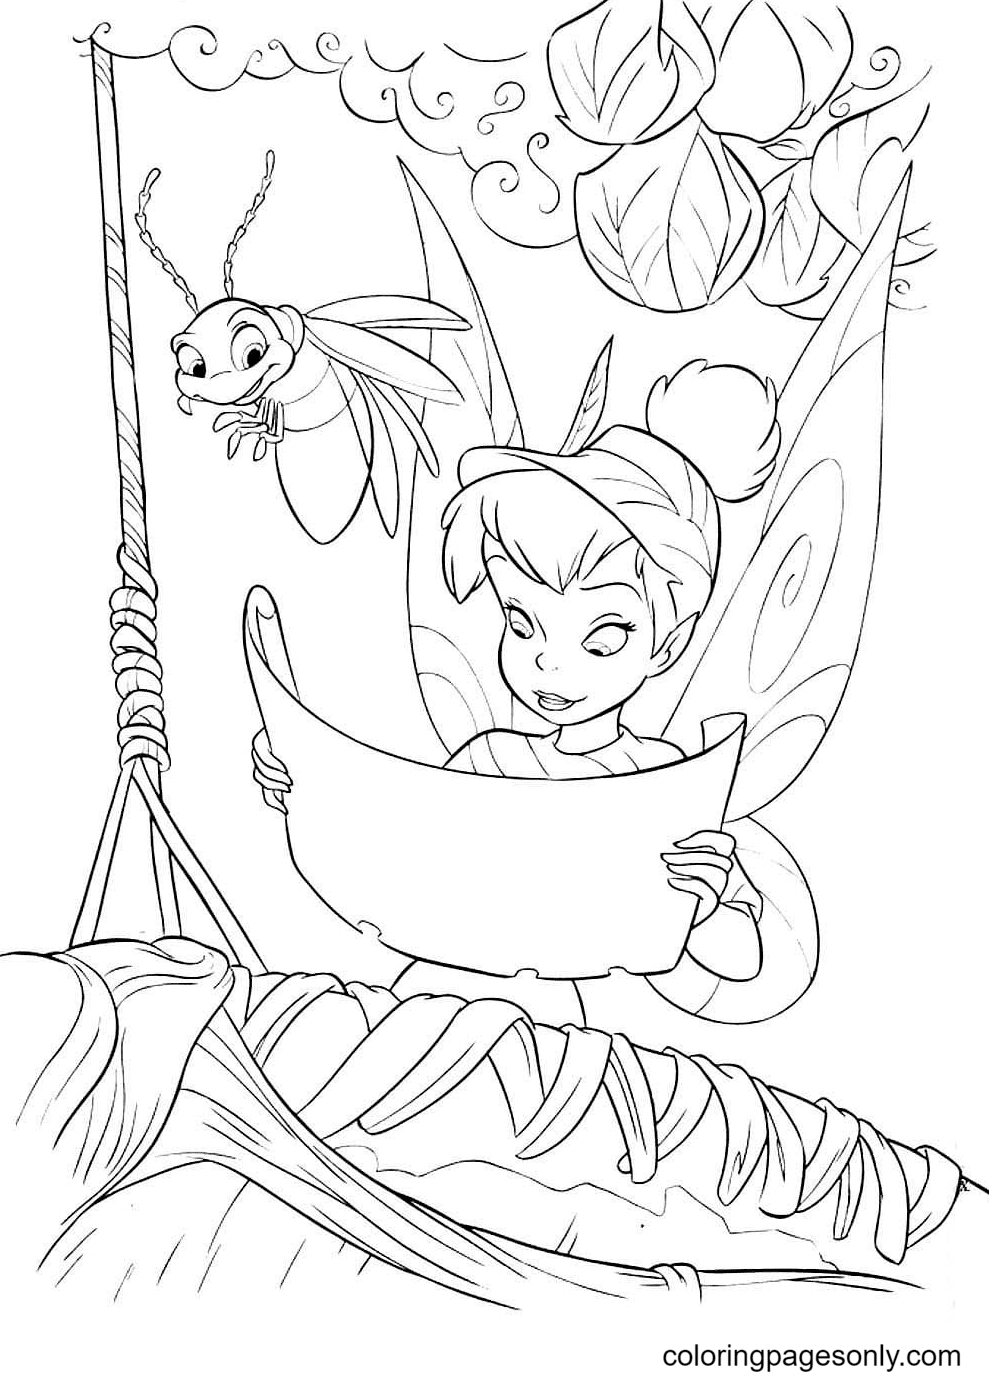 Firefly with Tinkerbell Coloring Page